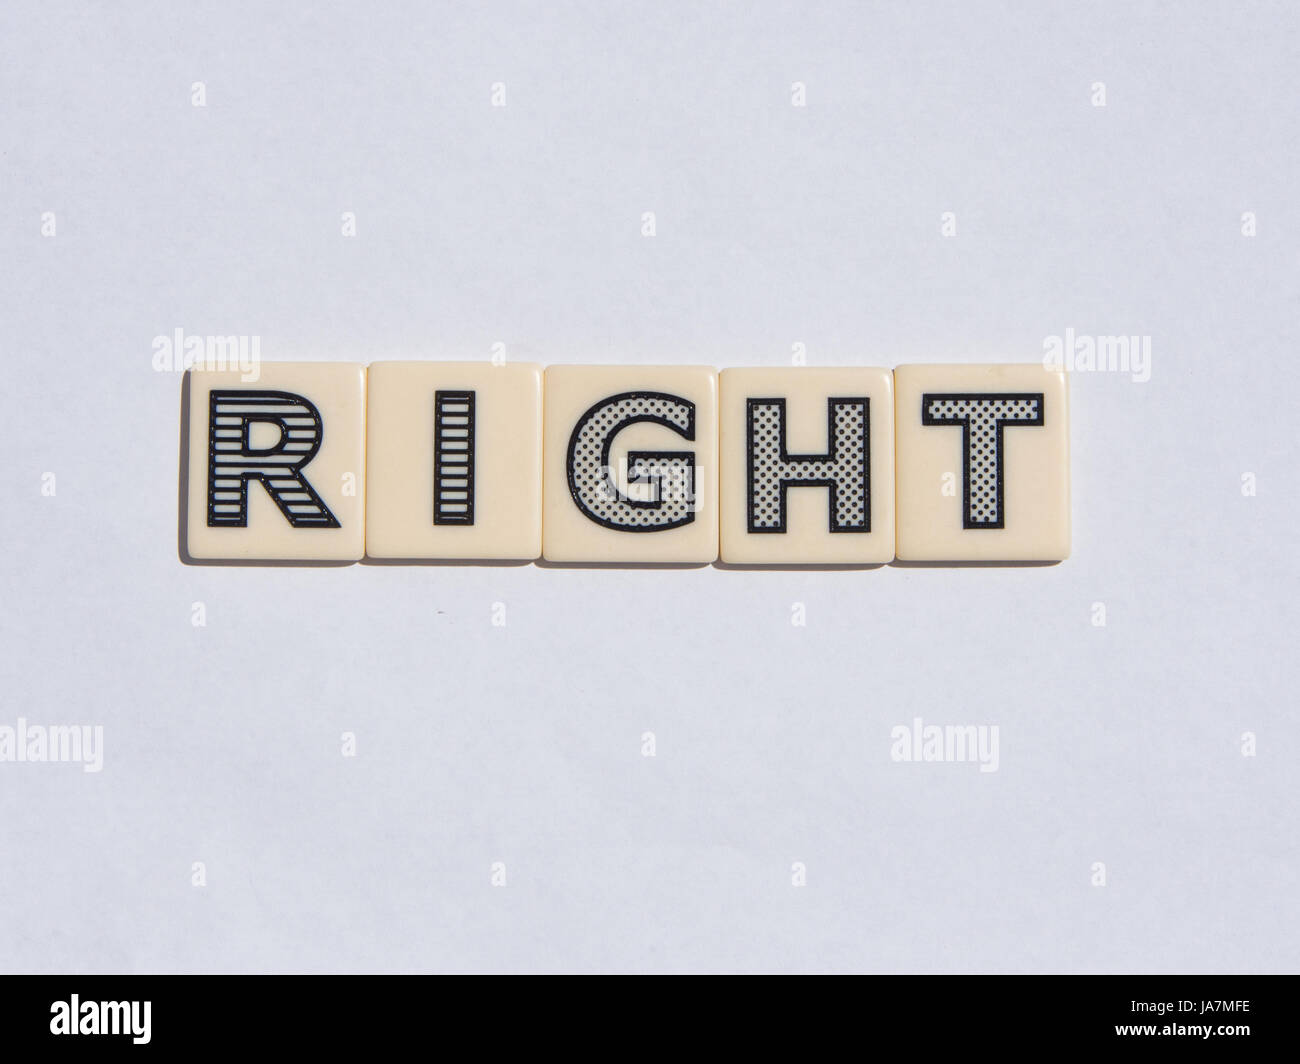 Letter tiles spelling out the word Right - Stock Image